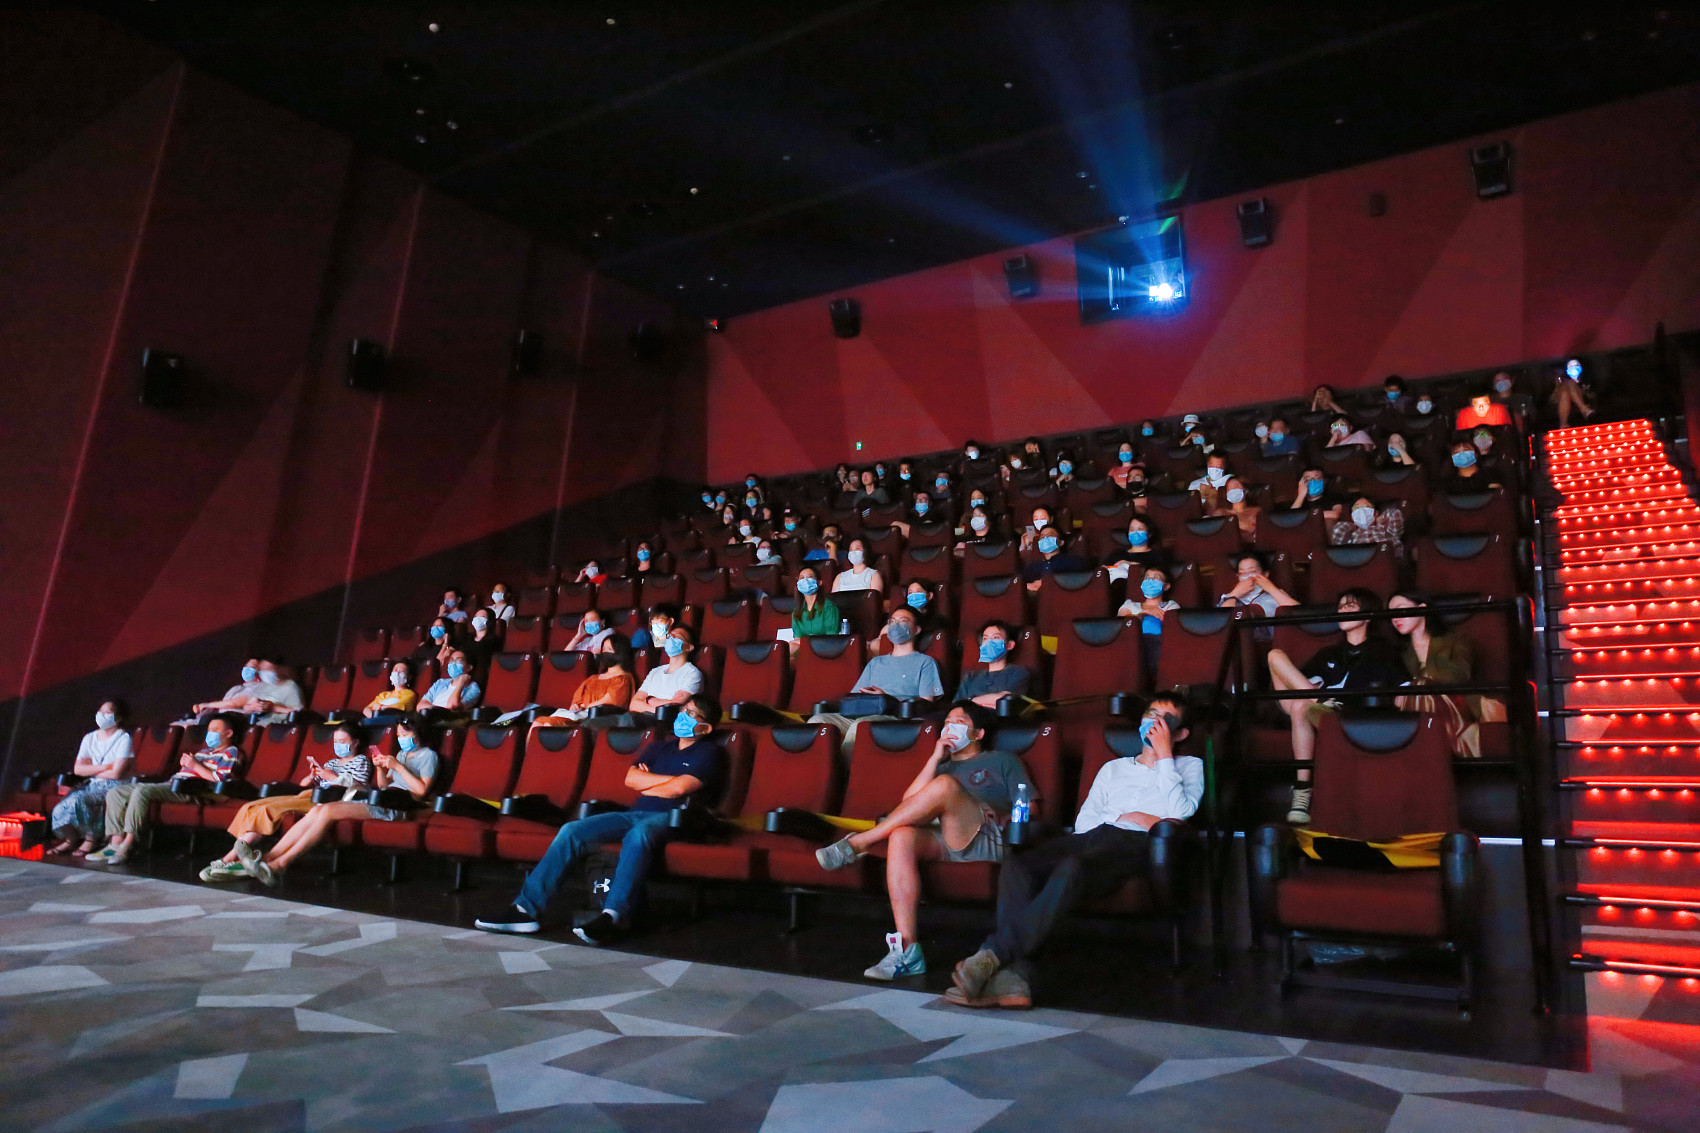 Chinese movie theaters raise attendance cap before holiday